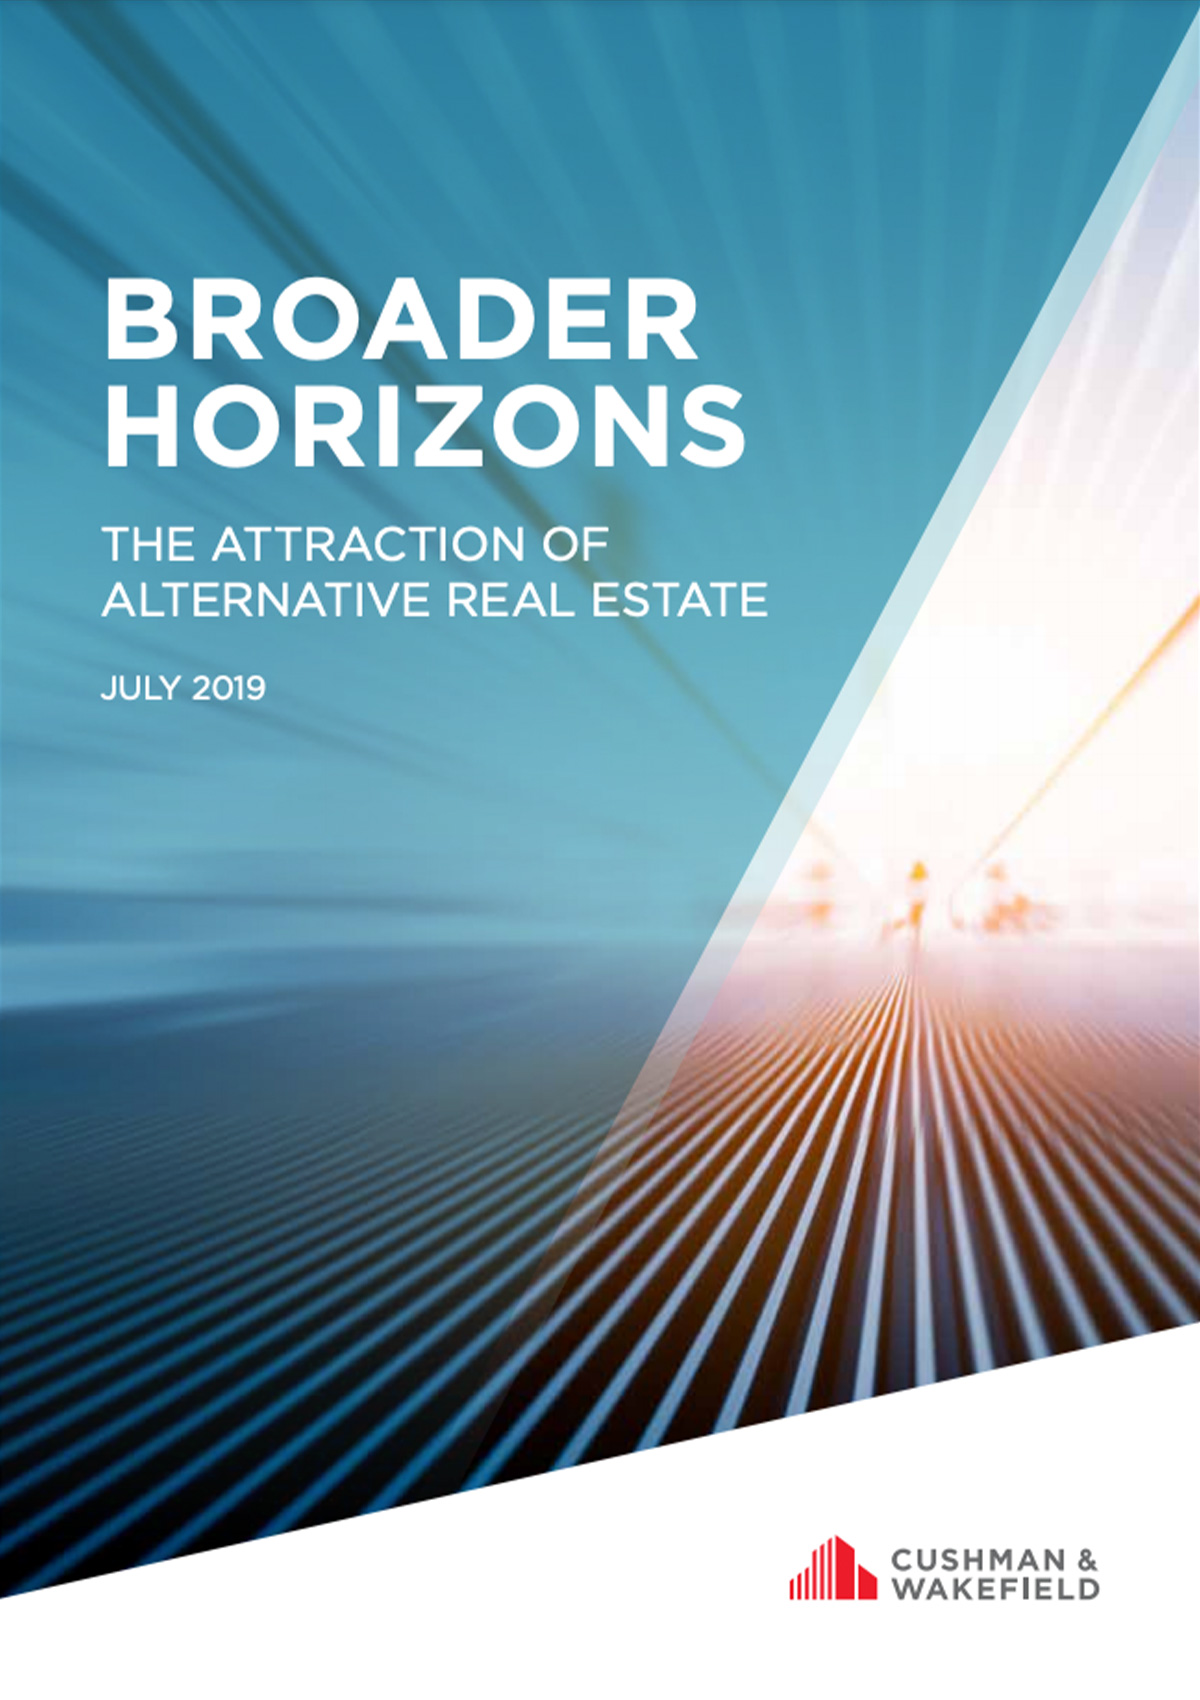 Broader Horizons - The Attraction of Alternative Real Estate